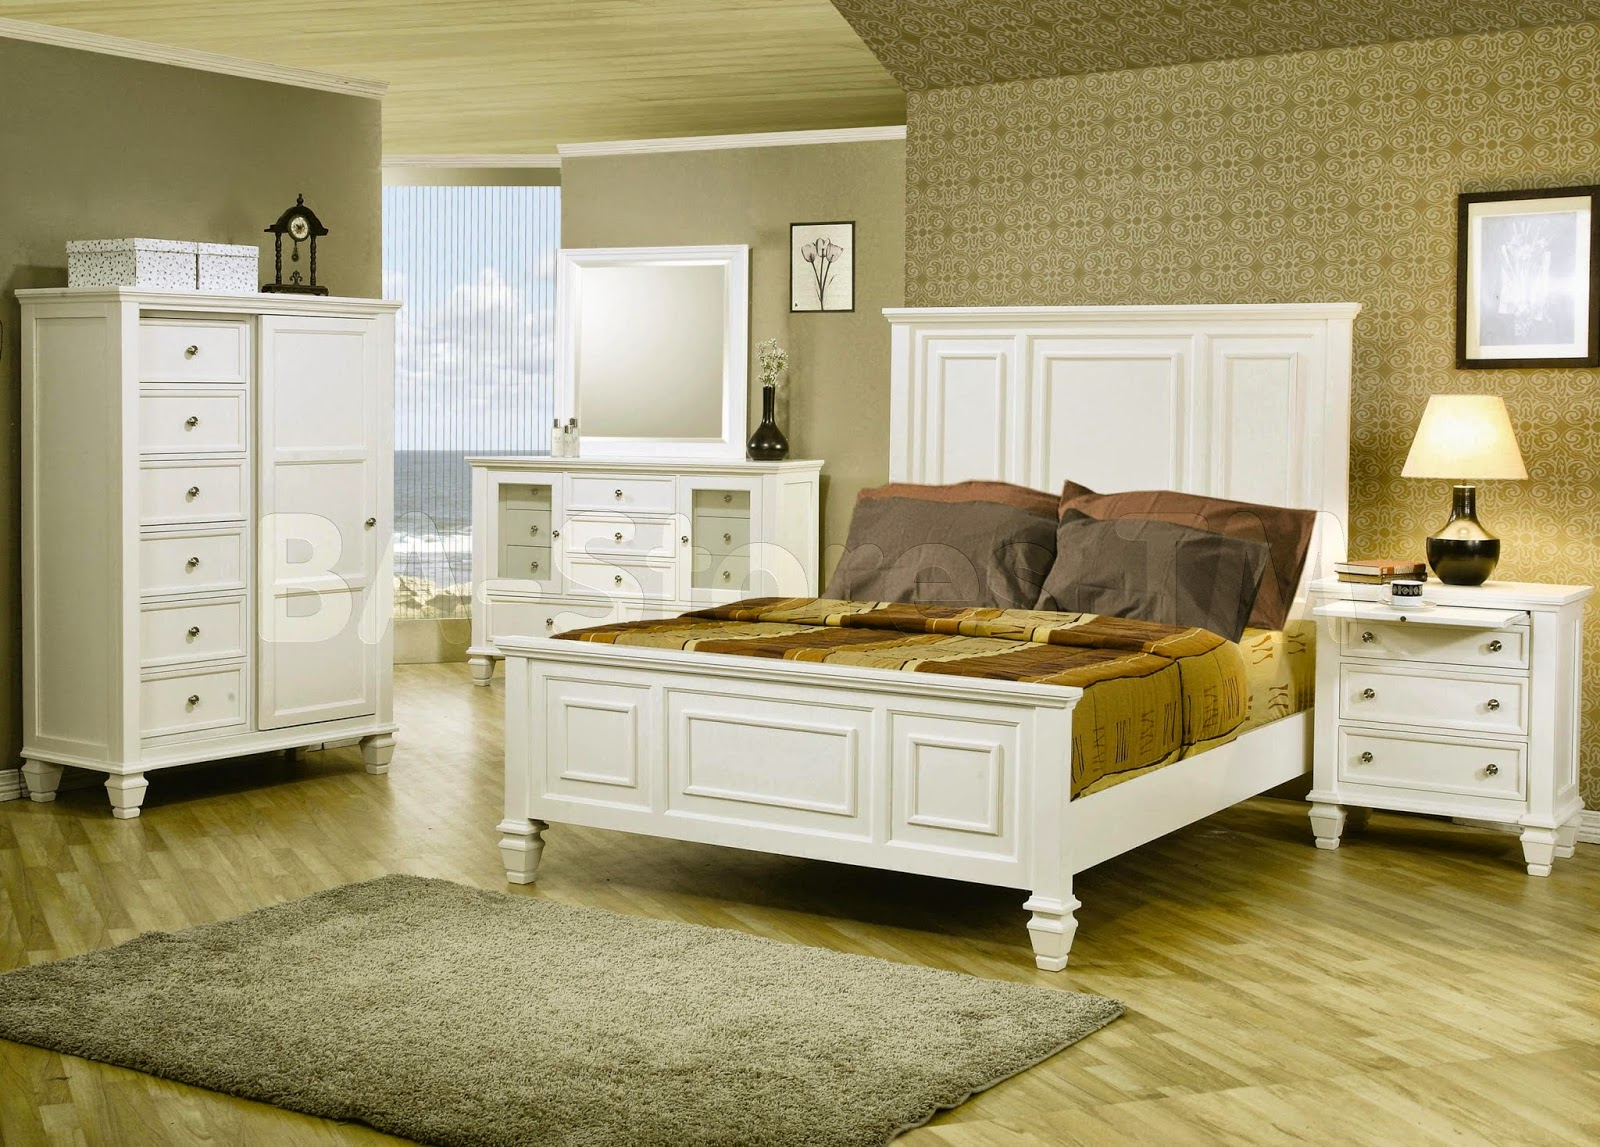 exellent bedroom furniture riyadh piece set from golden house